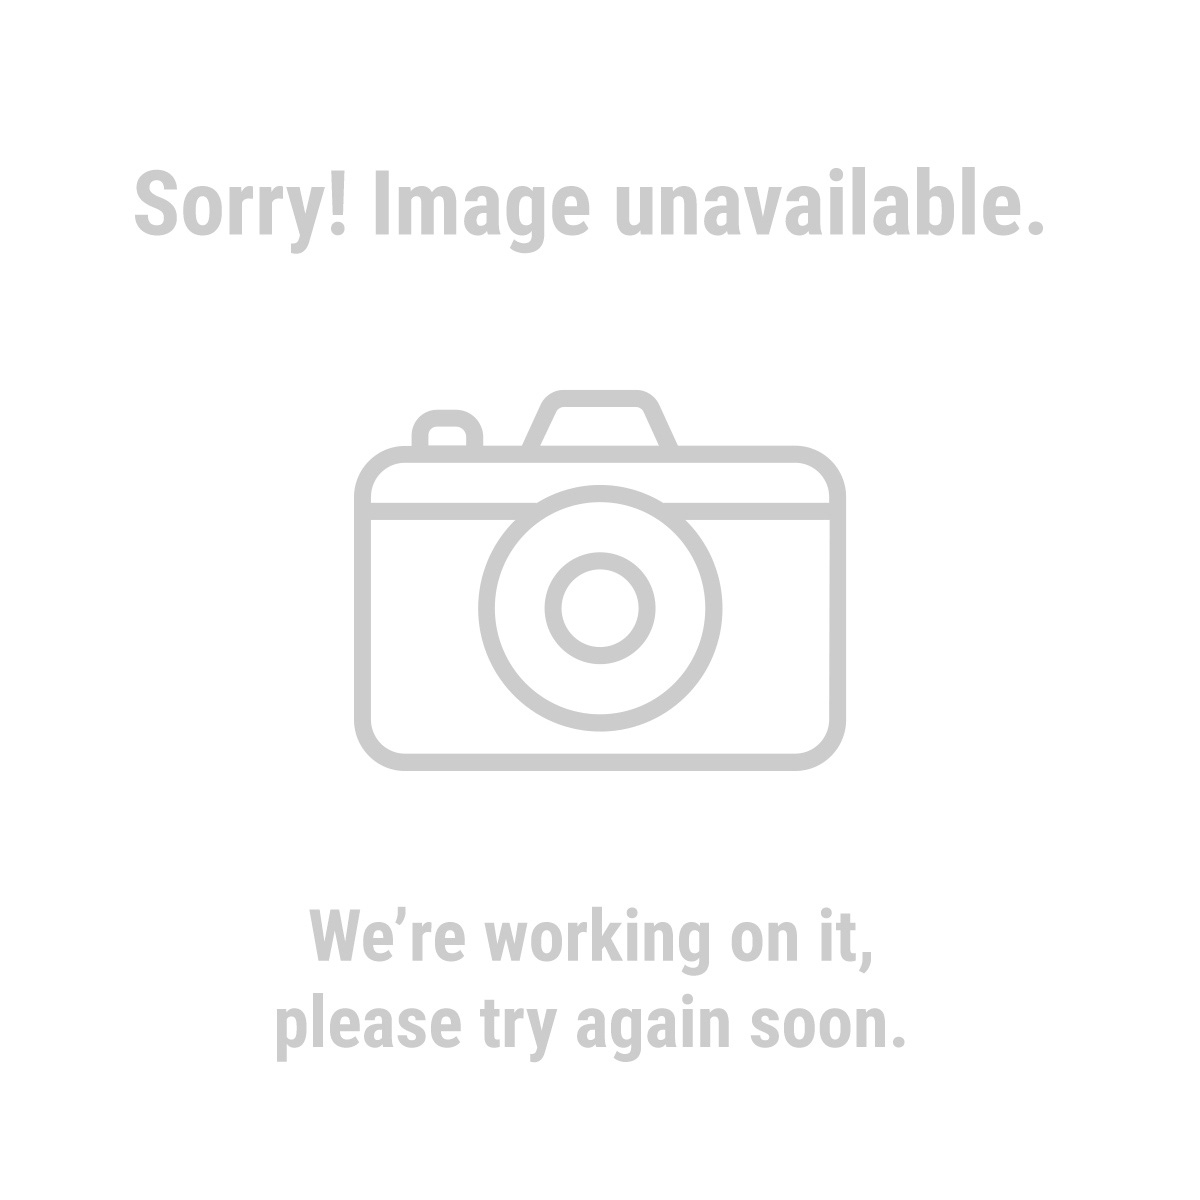 "Pittsburgh 67910 8 Piece 3/8"" Drive SAE Deep Wall Impact Socket Set"